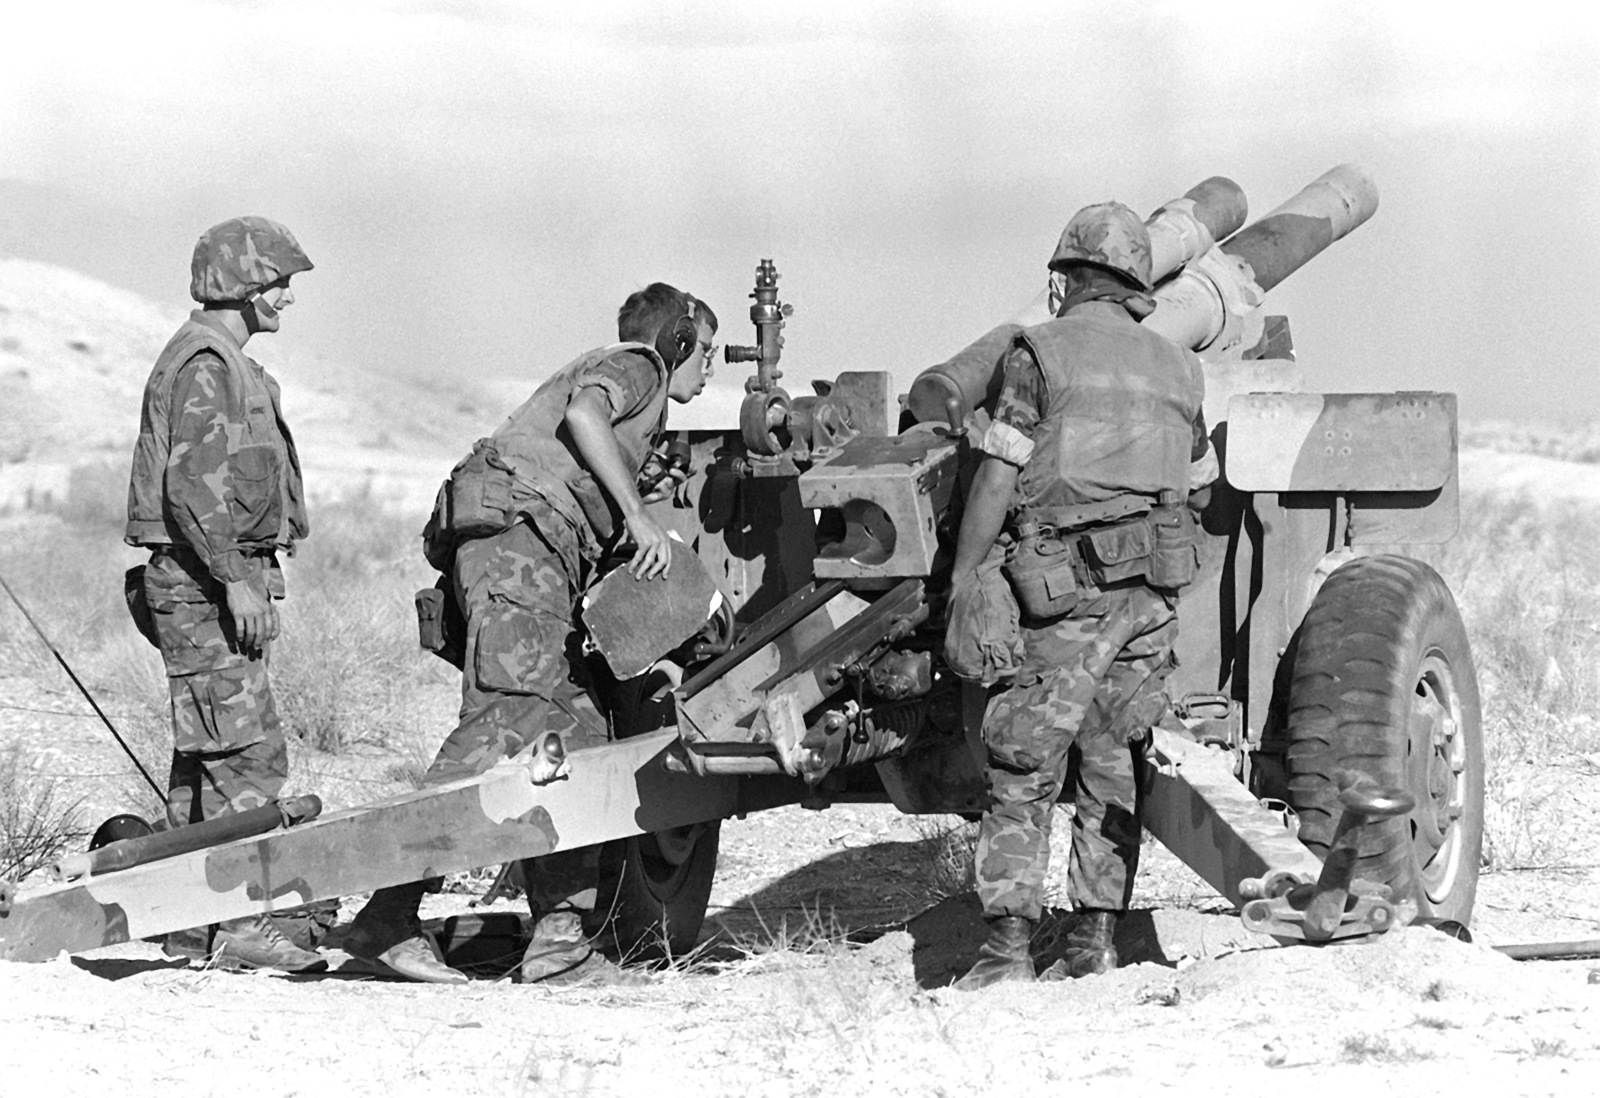 In preparation for setting up the 105mm howitzer, LCPL Hodges digs a fire pit for his gun team. These Marines are participating in Operation CAX-1-2-82